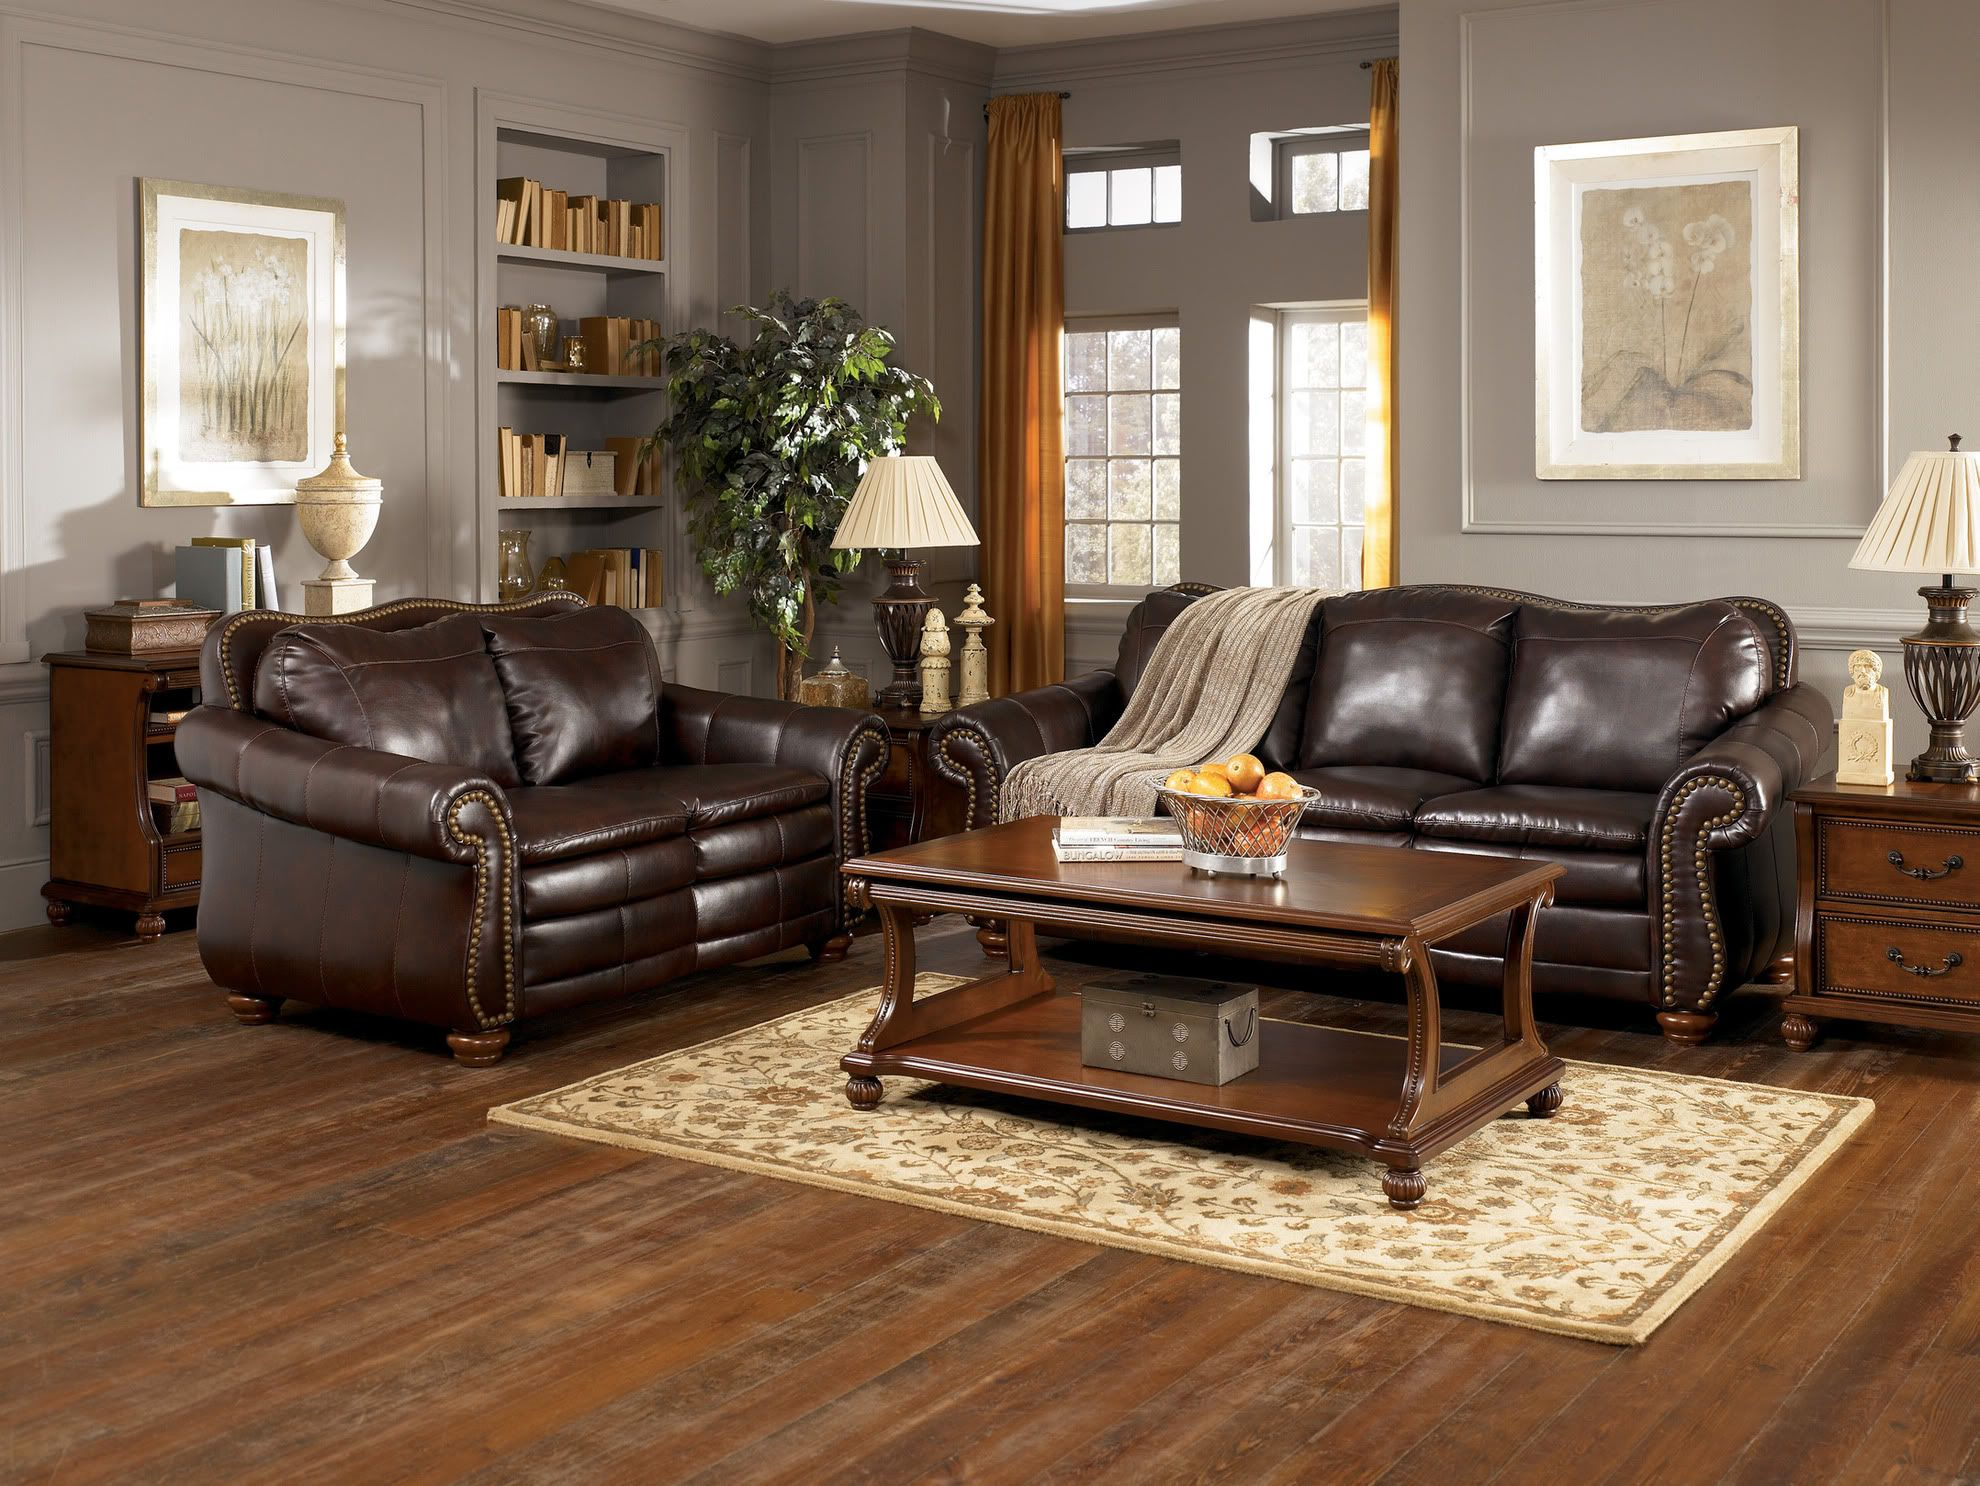 Fetching grey living room with brown furniture design for Grey and brown living room ideas